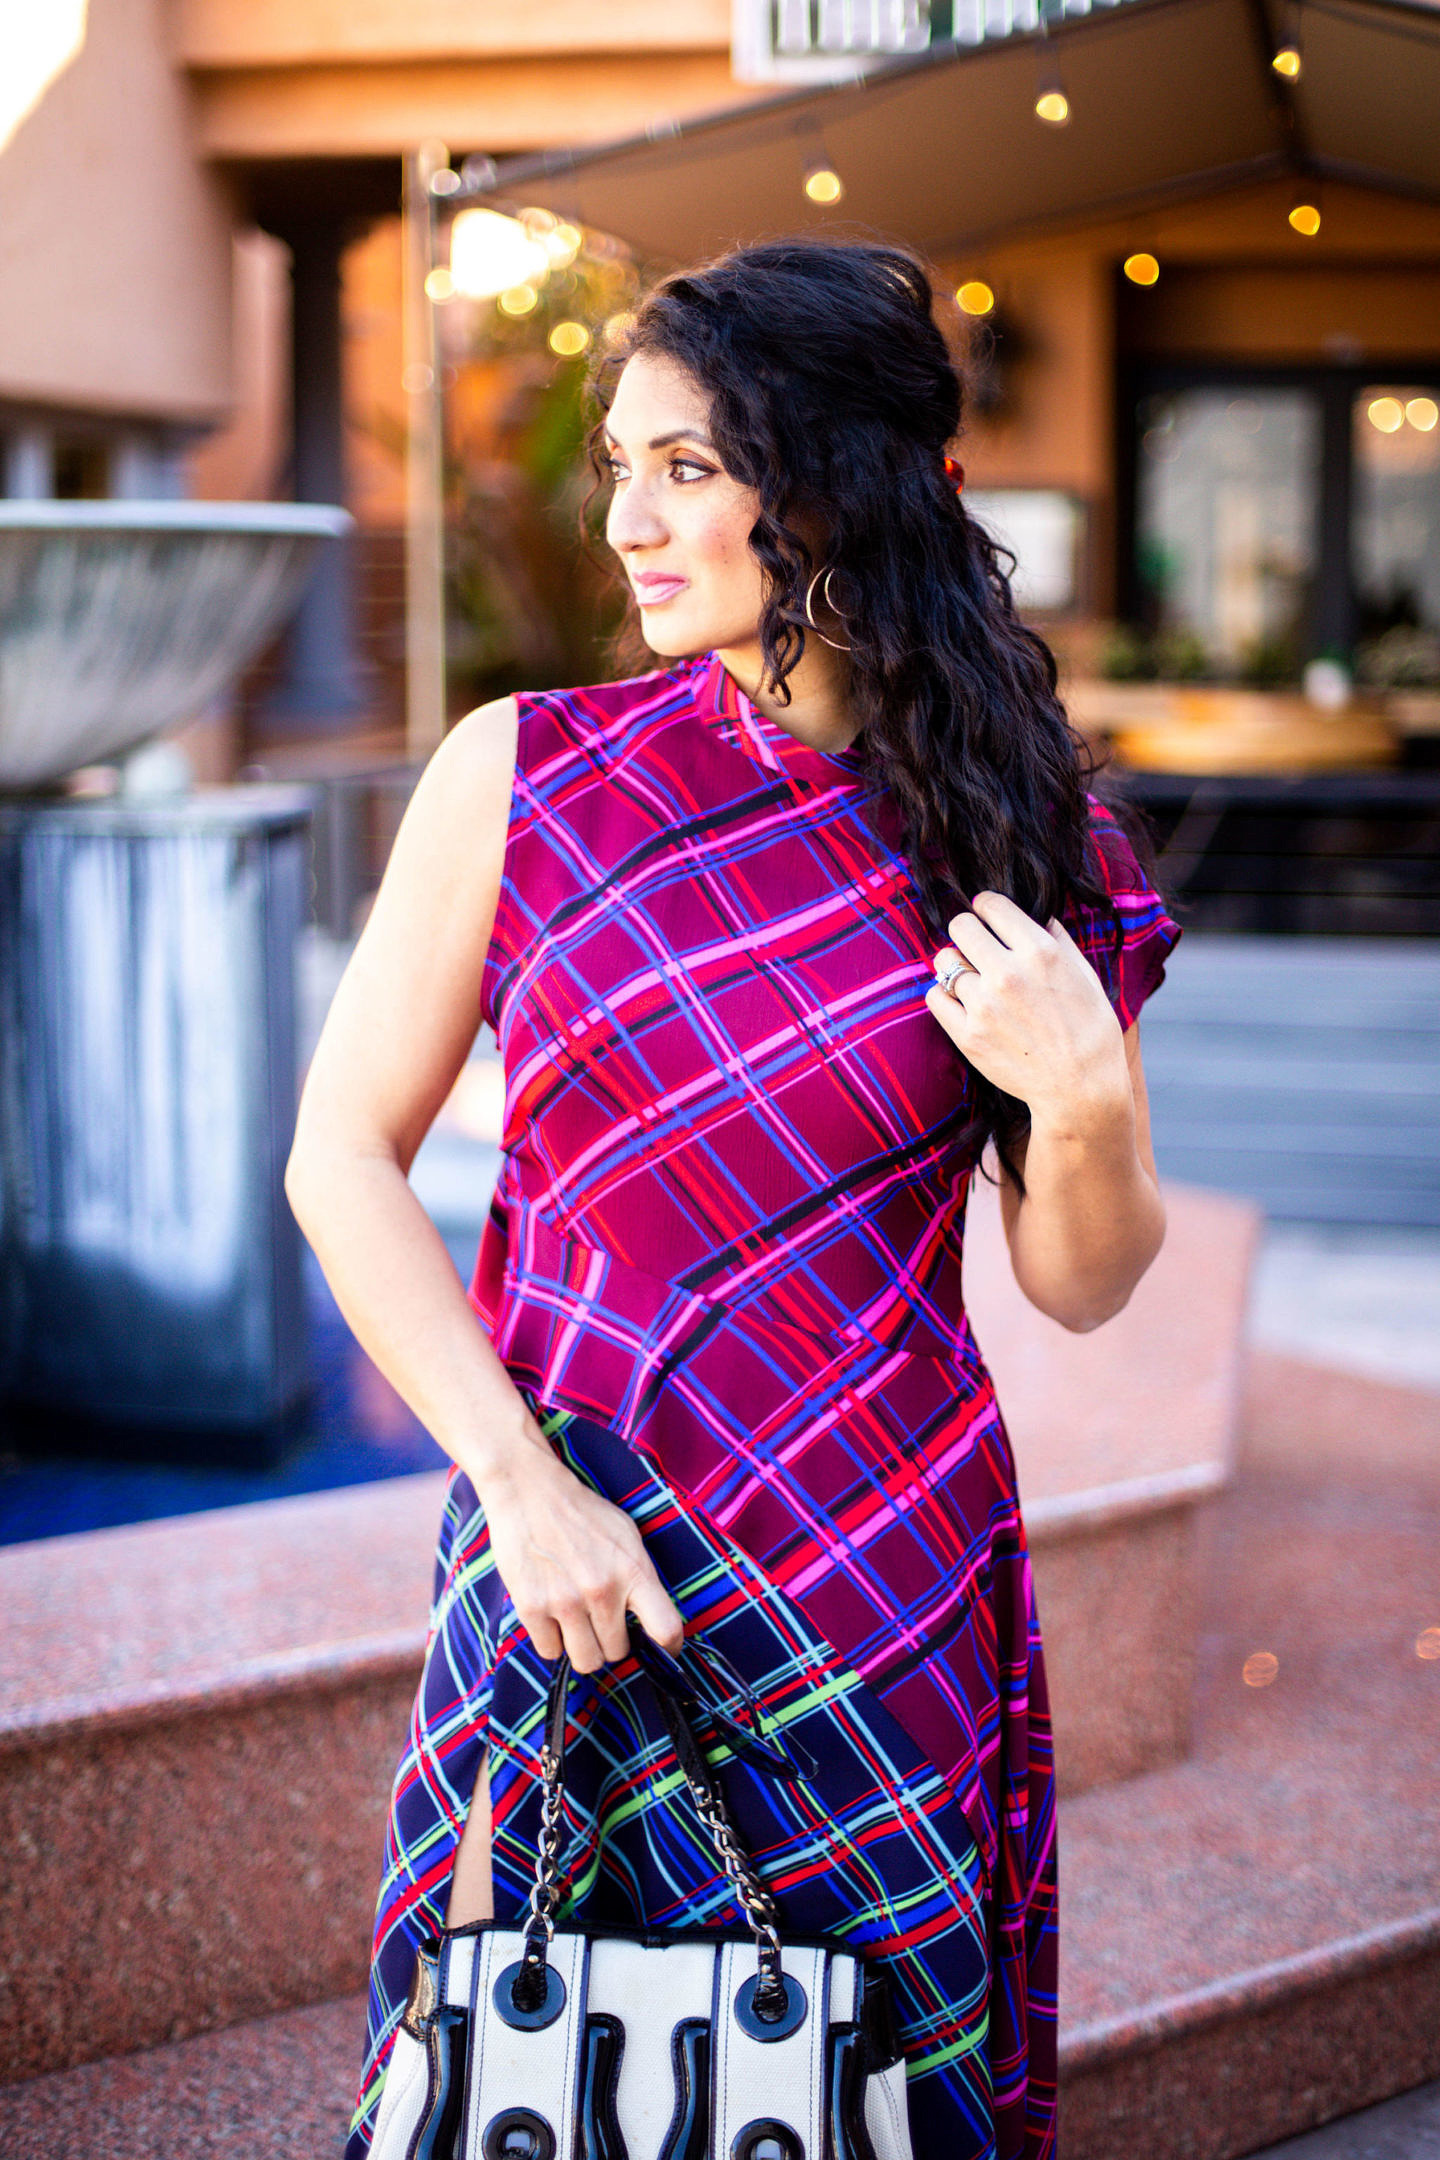 Mad about plaid but aren't sure how to style plaid? Orange County blogger Debbie Savage is sharing her top tips on how to style plaid like a pro. See her tips HERE!